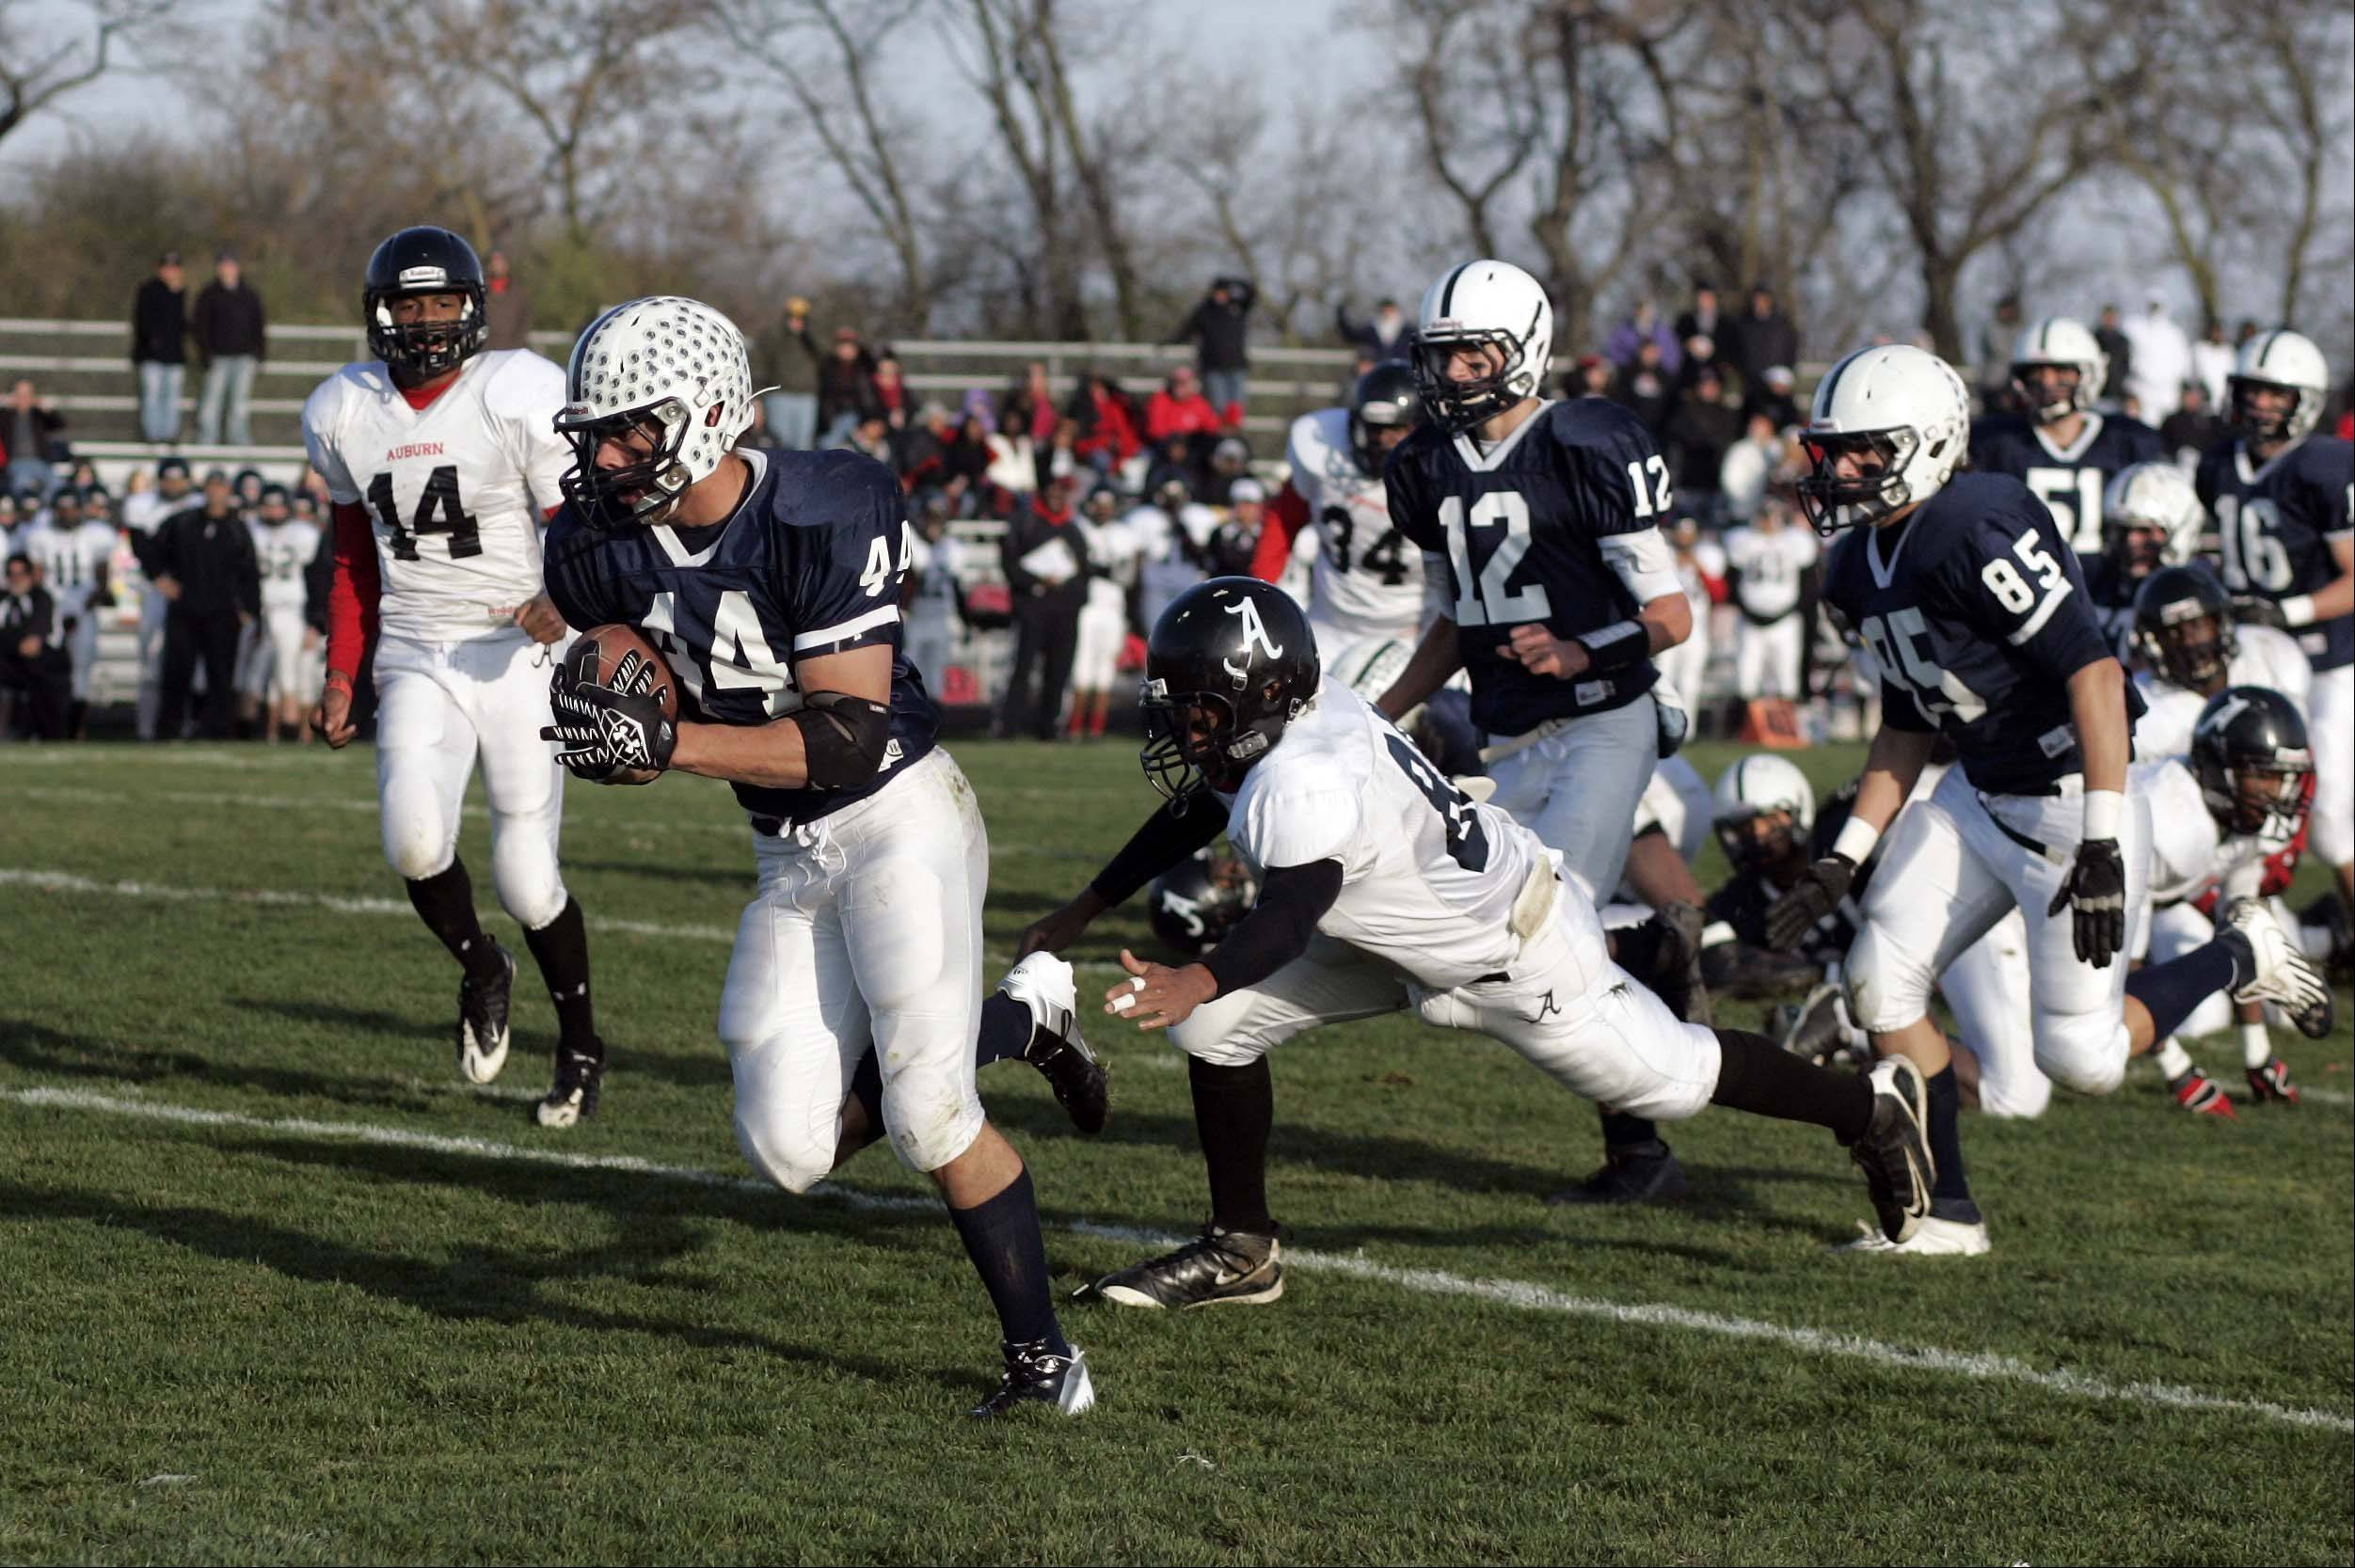 Cary-Grove's Kyle Norberg on his way to his first touchdown of the game during Rockford Auburn at Cary-Grove in IHSA Class 6A playoff Football Saturday October 27, 2012.